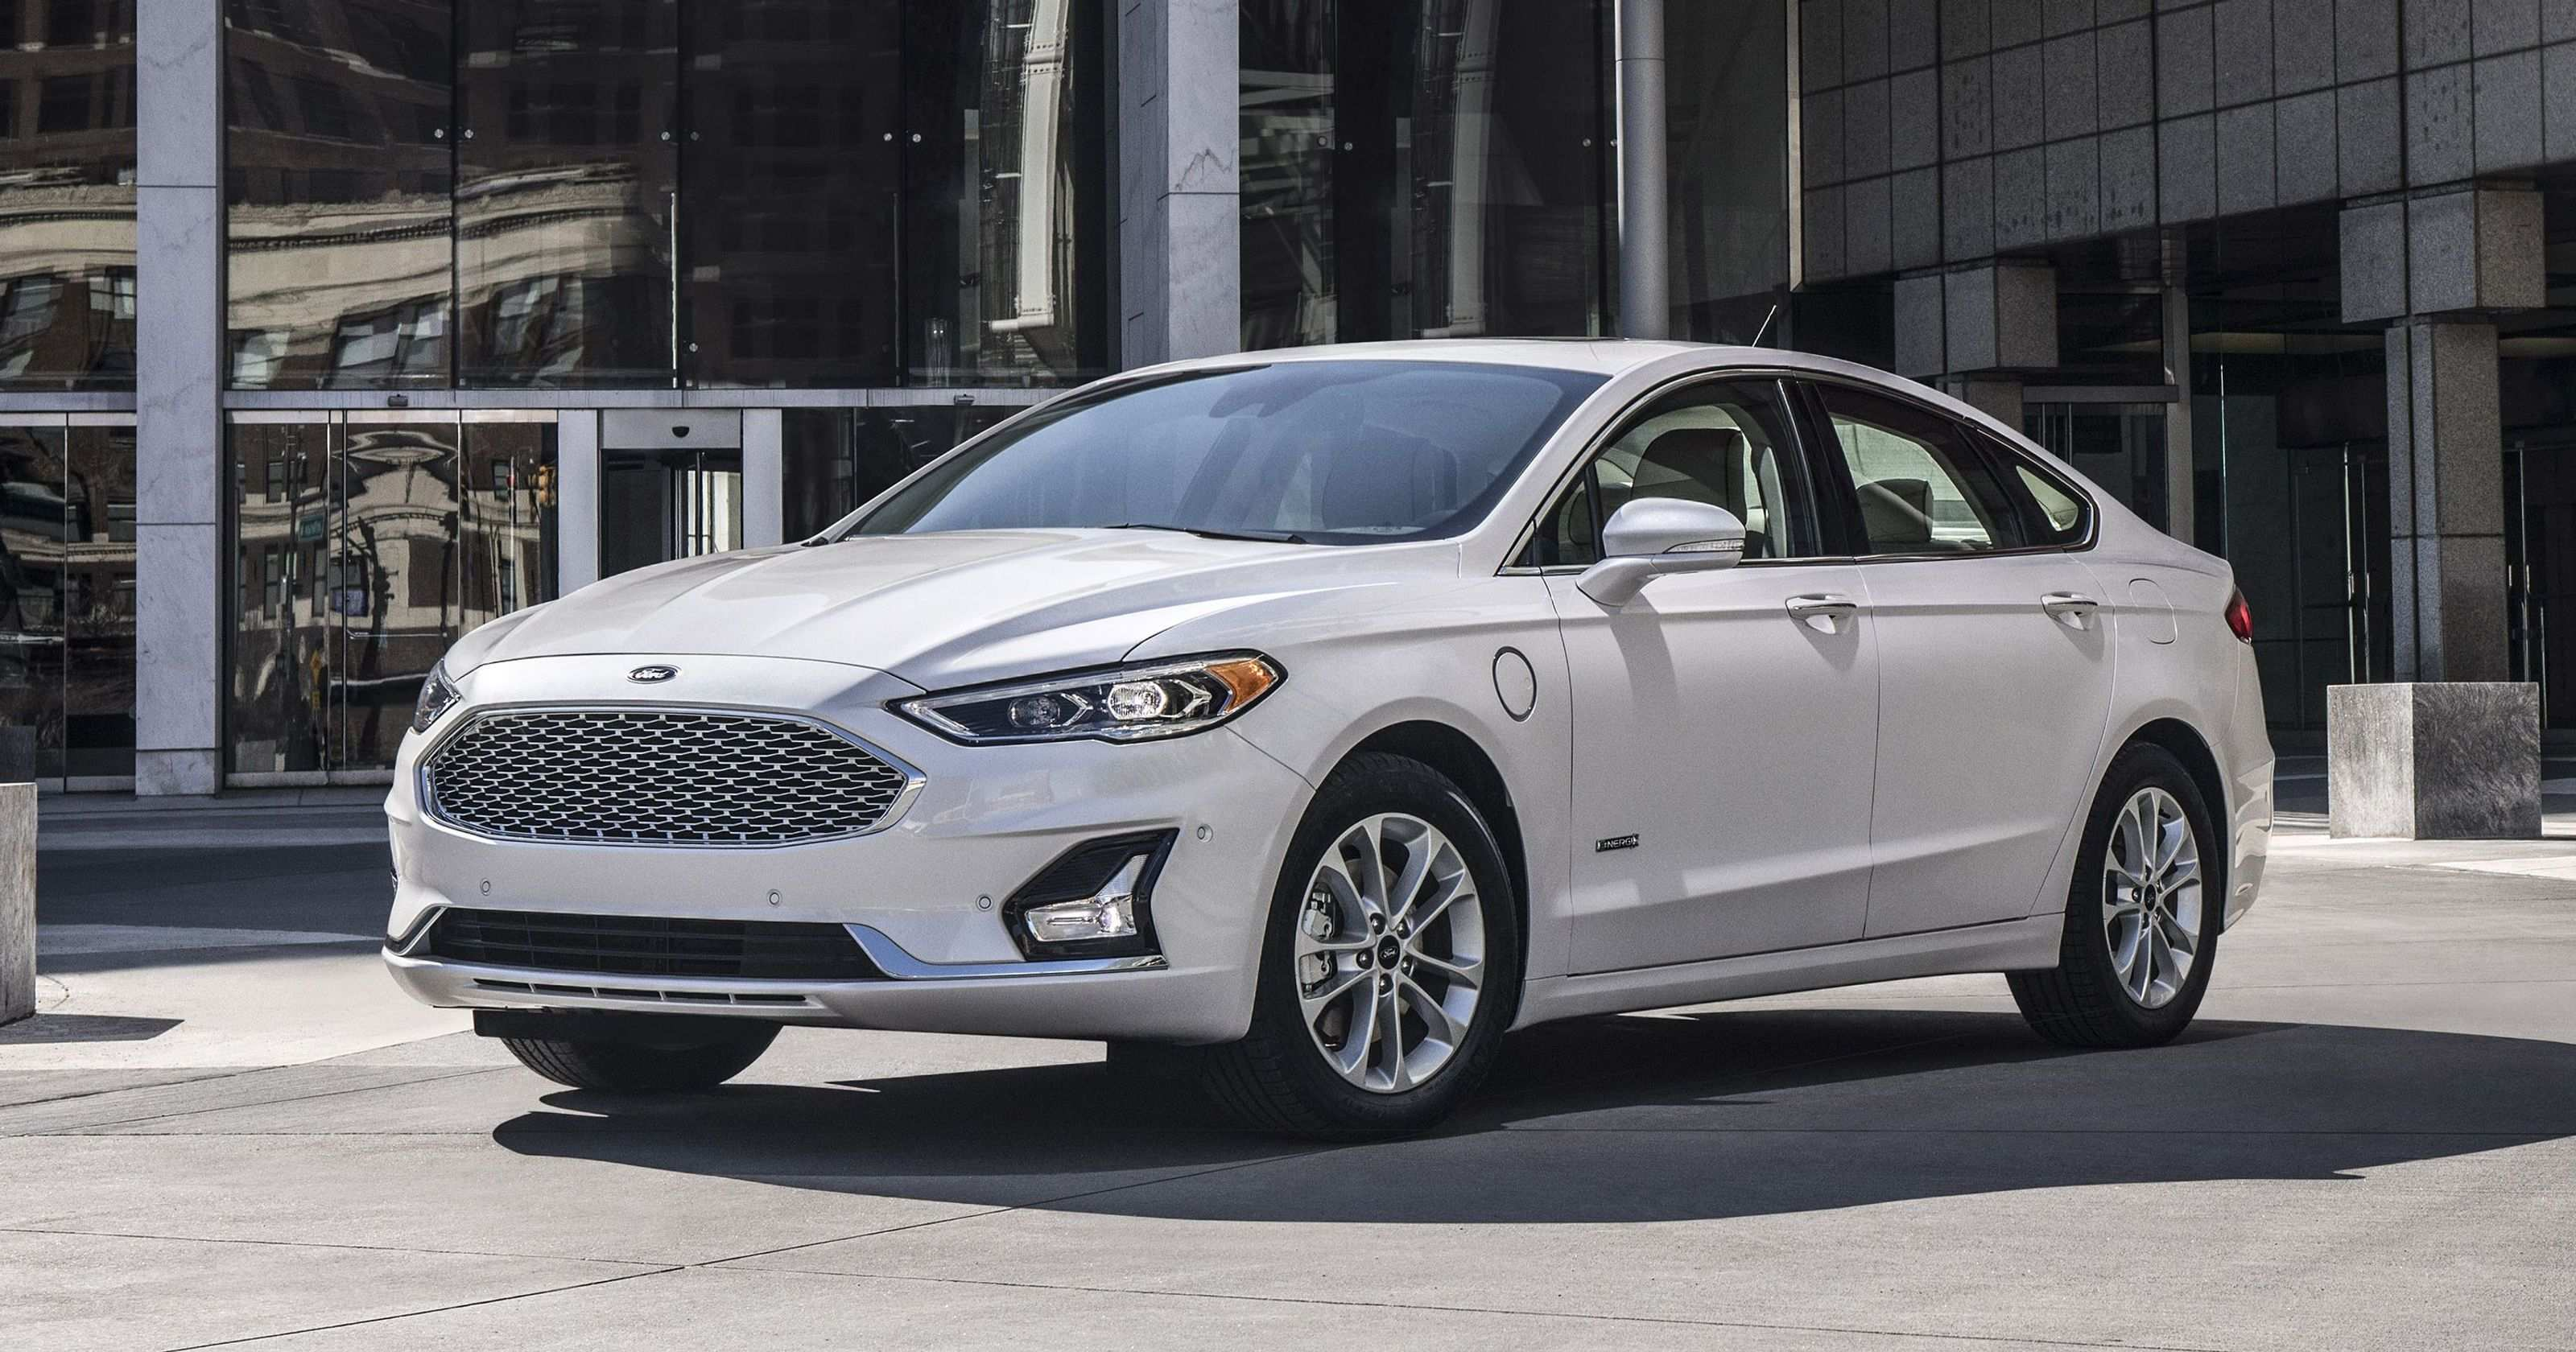 89 Best Review 2019 Ford Hybrid Vehicles Style with 2019 Ford Hybrid Vehicles